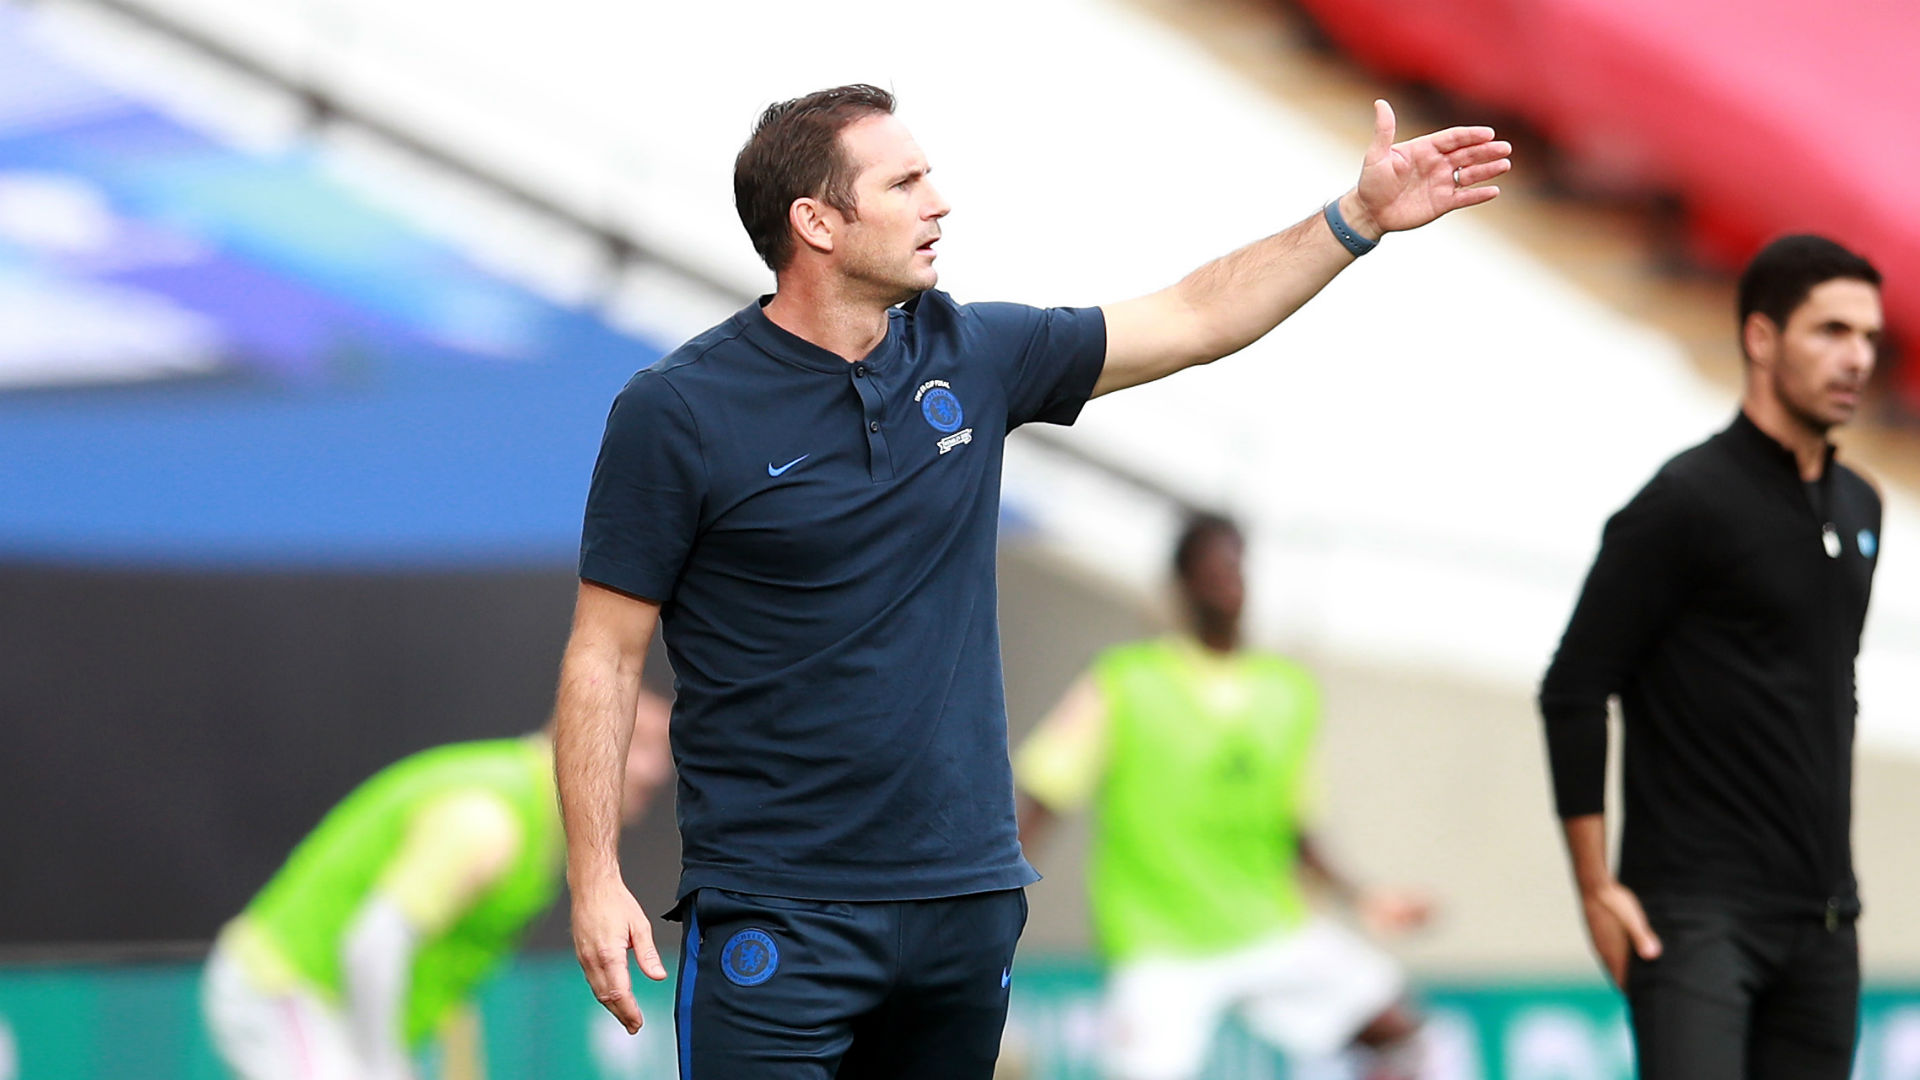 September 12 too early - Lampard wants Chelsea's Premier League start pushed back